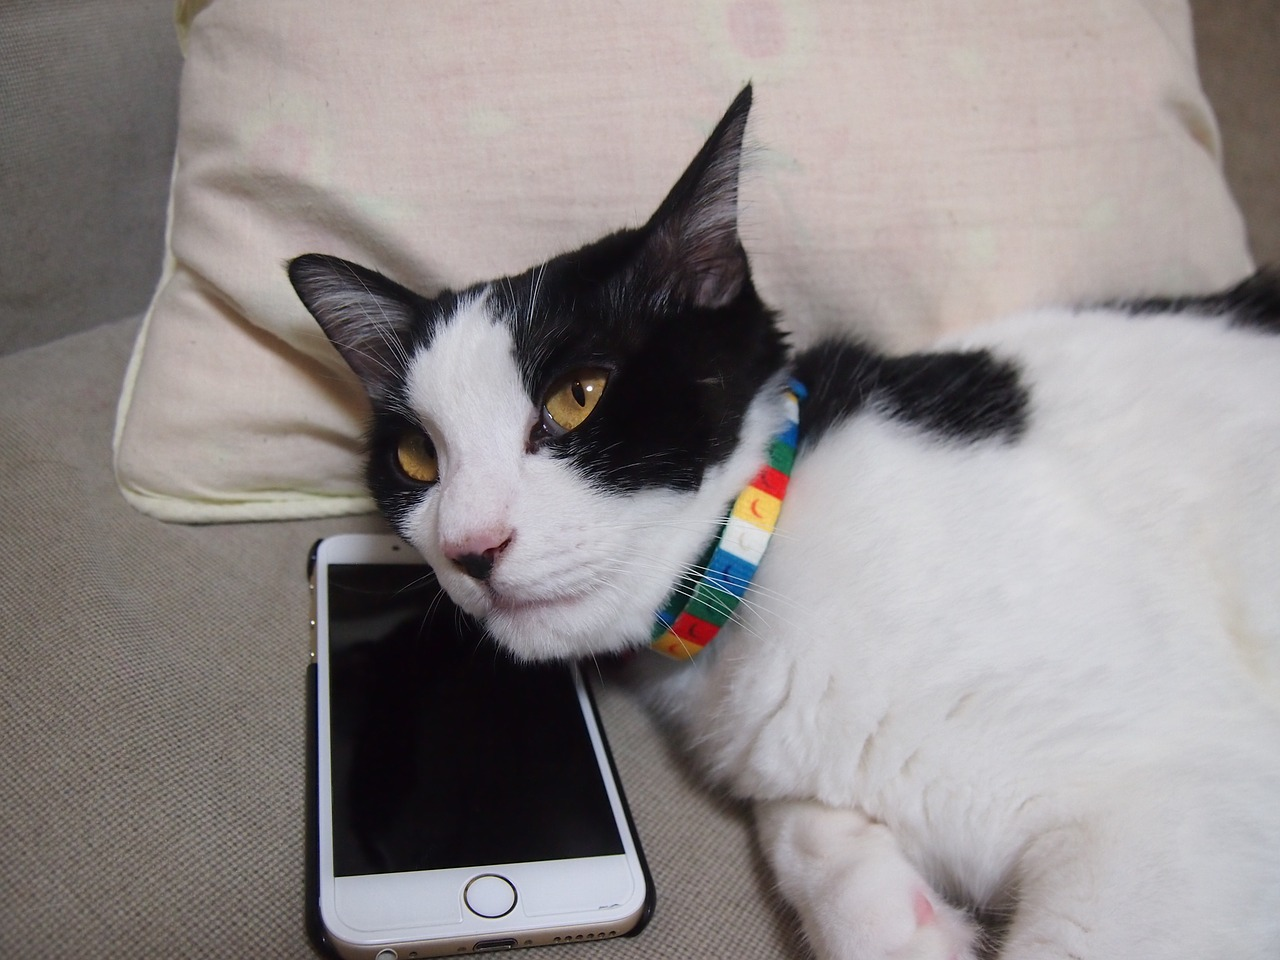 Cat owner loves using pet-friendly mobile apps